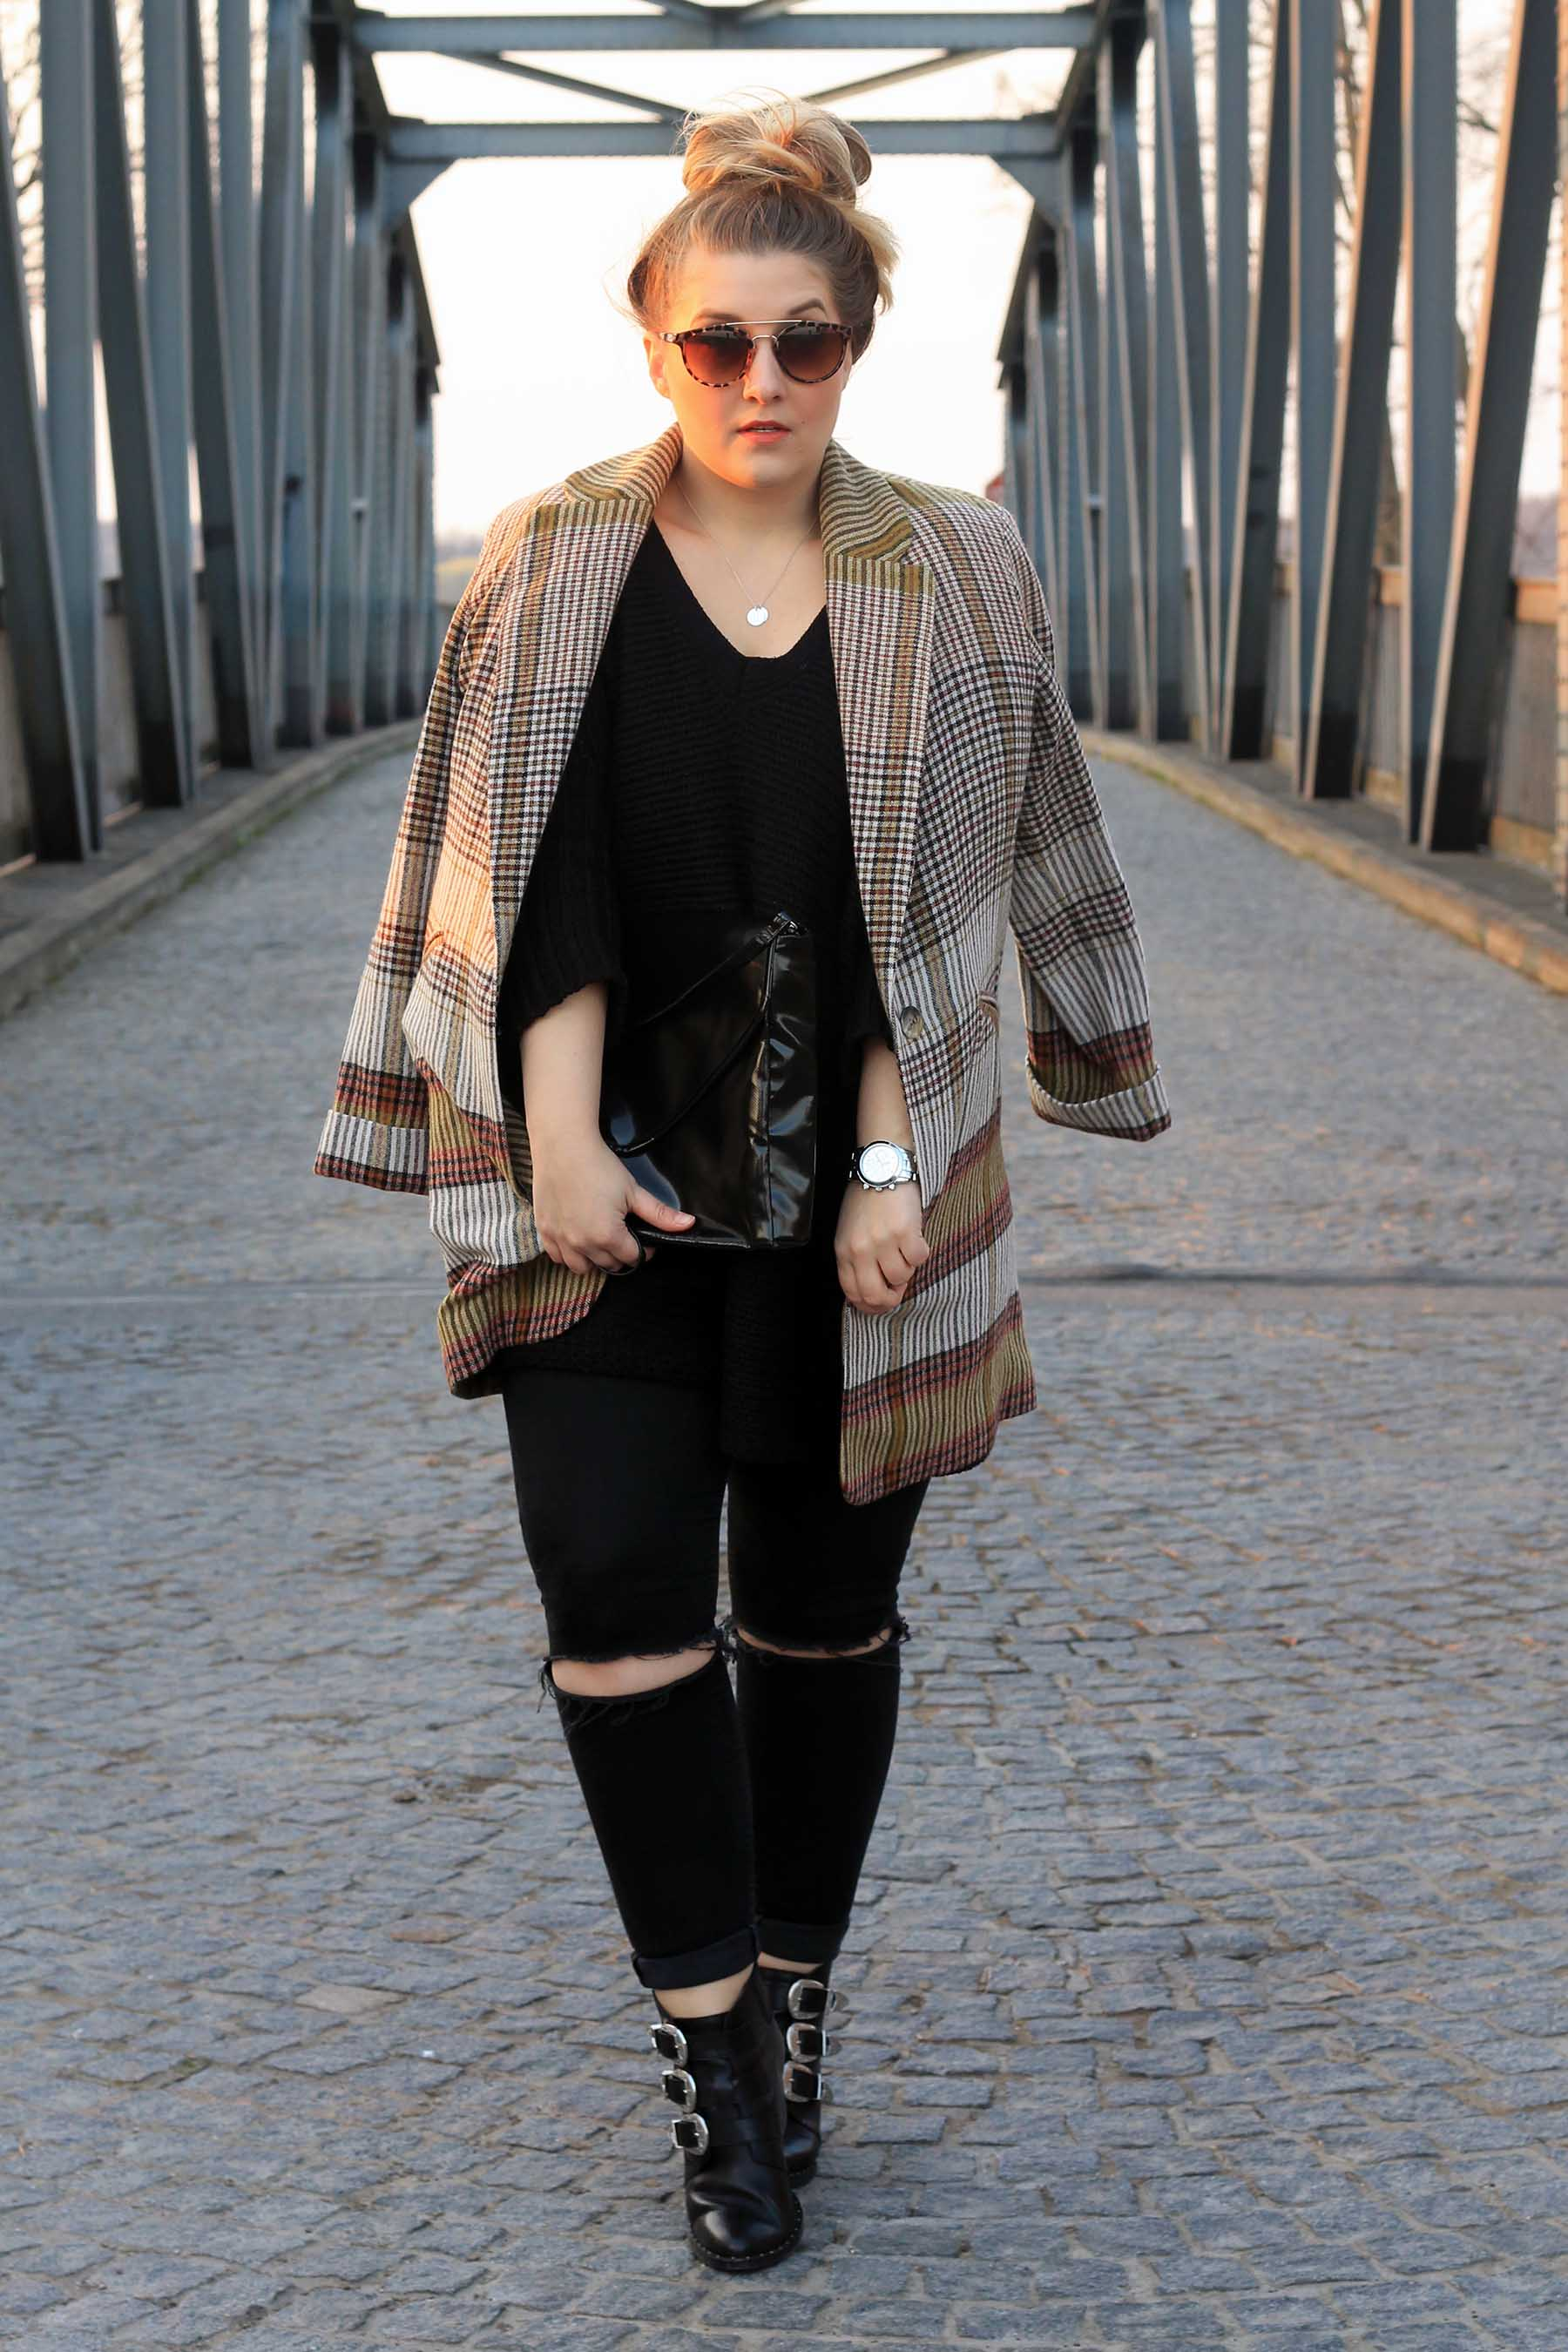 outfit-modeblog-karierter-mantel-style